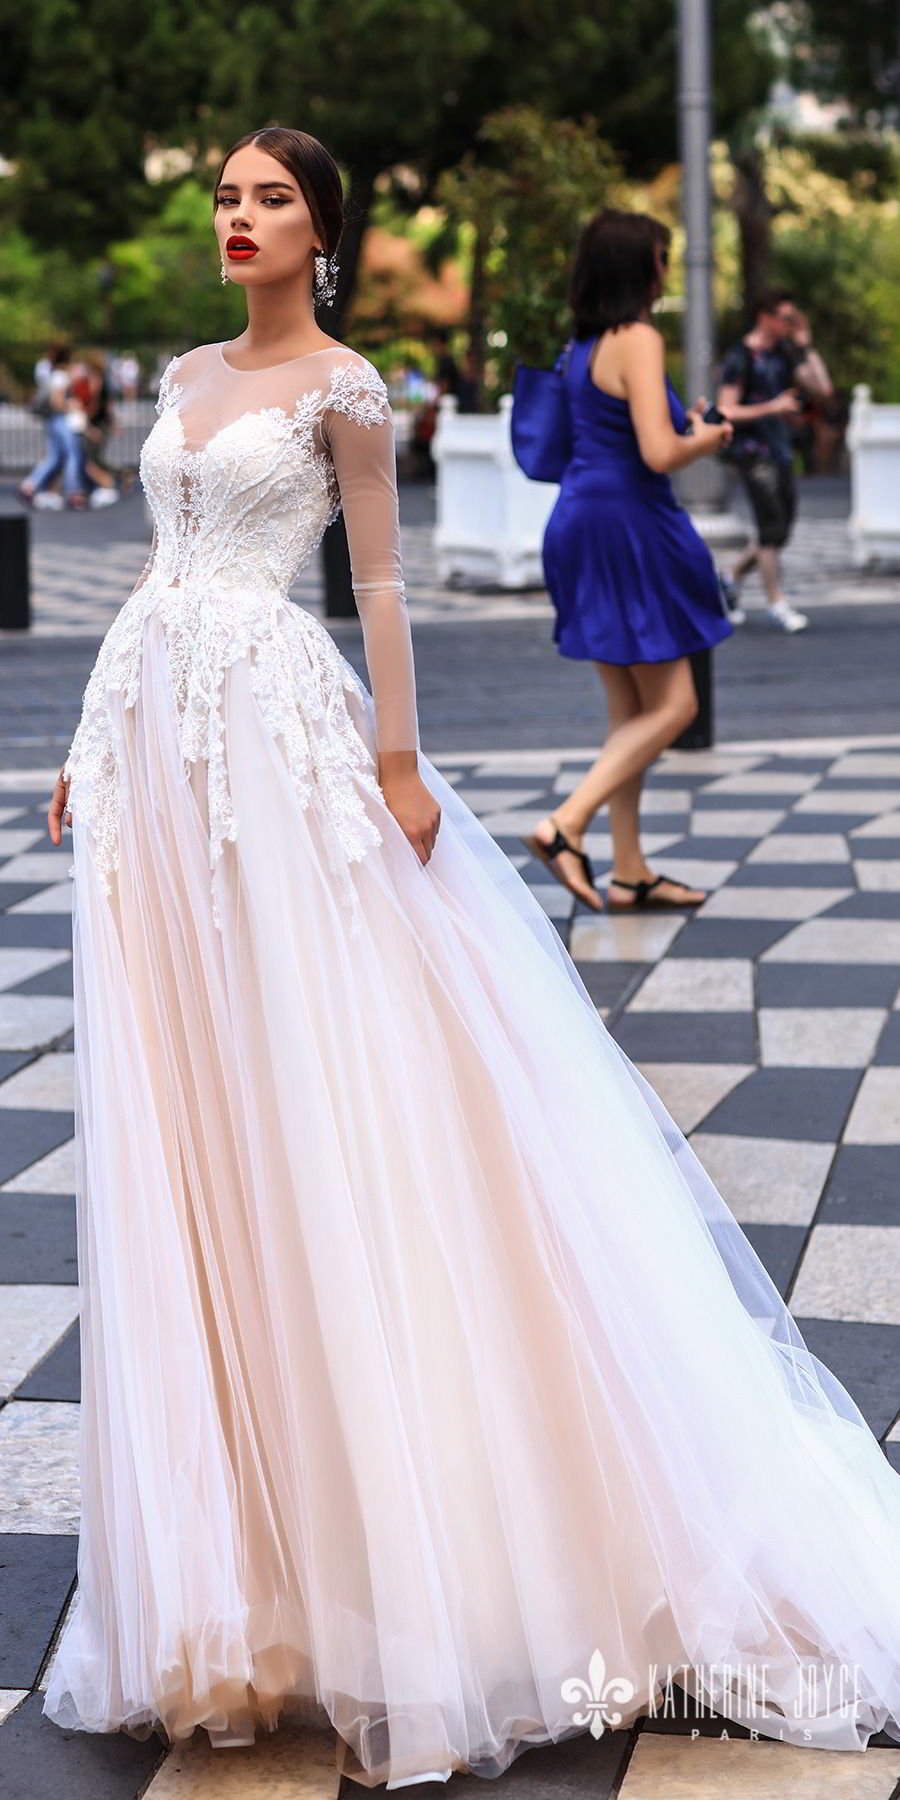 katherine joyce 2018 bridal long sleeves sheer jewel neck sweetheart neckline heavily embellished bodice tulle skirt romantic blush a  line wedding dress sheer back chapel train (dolores) mv